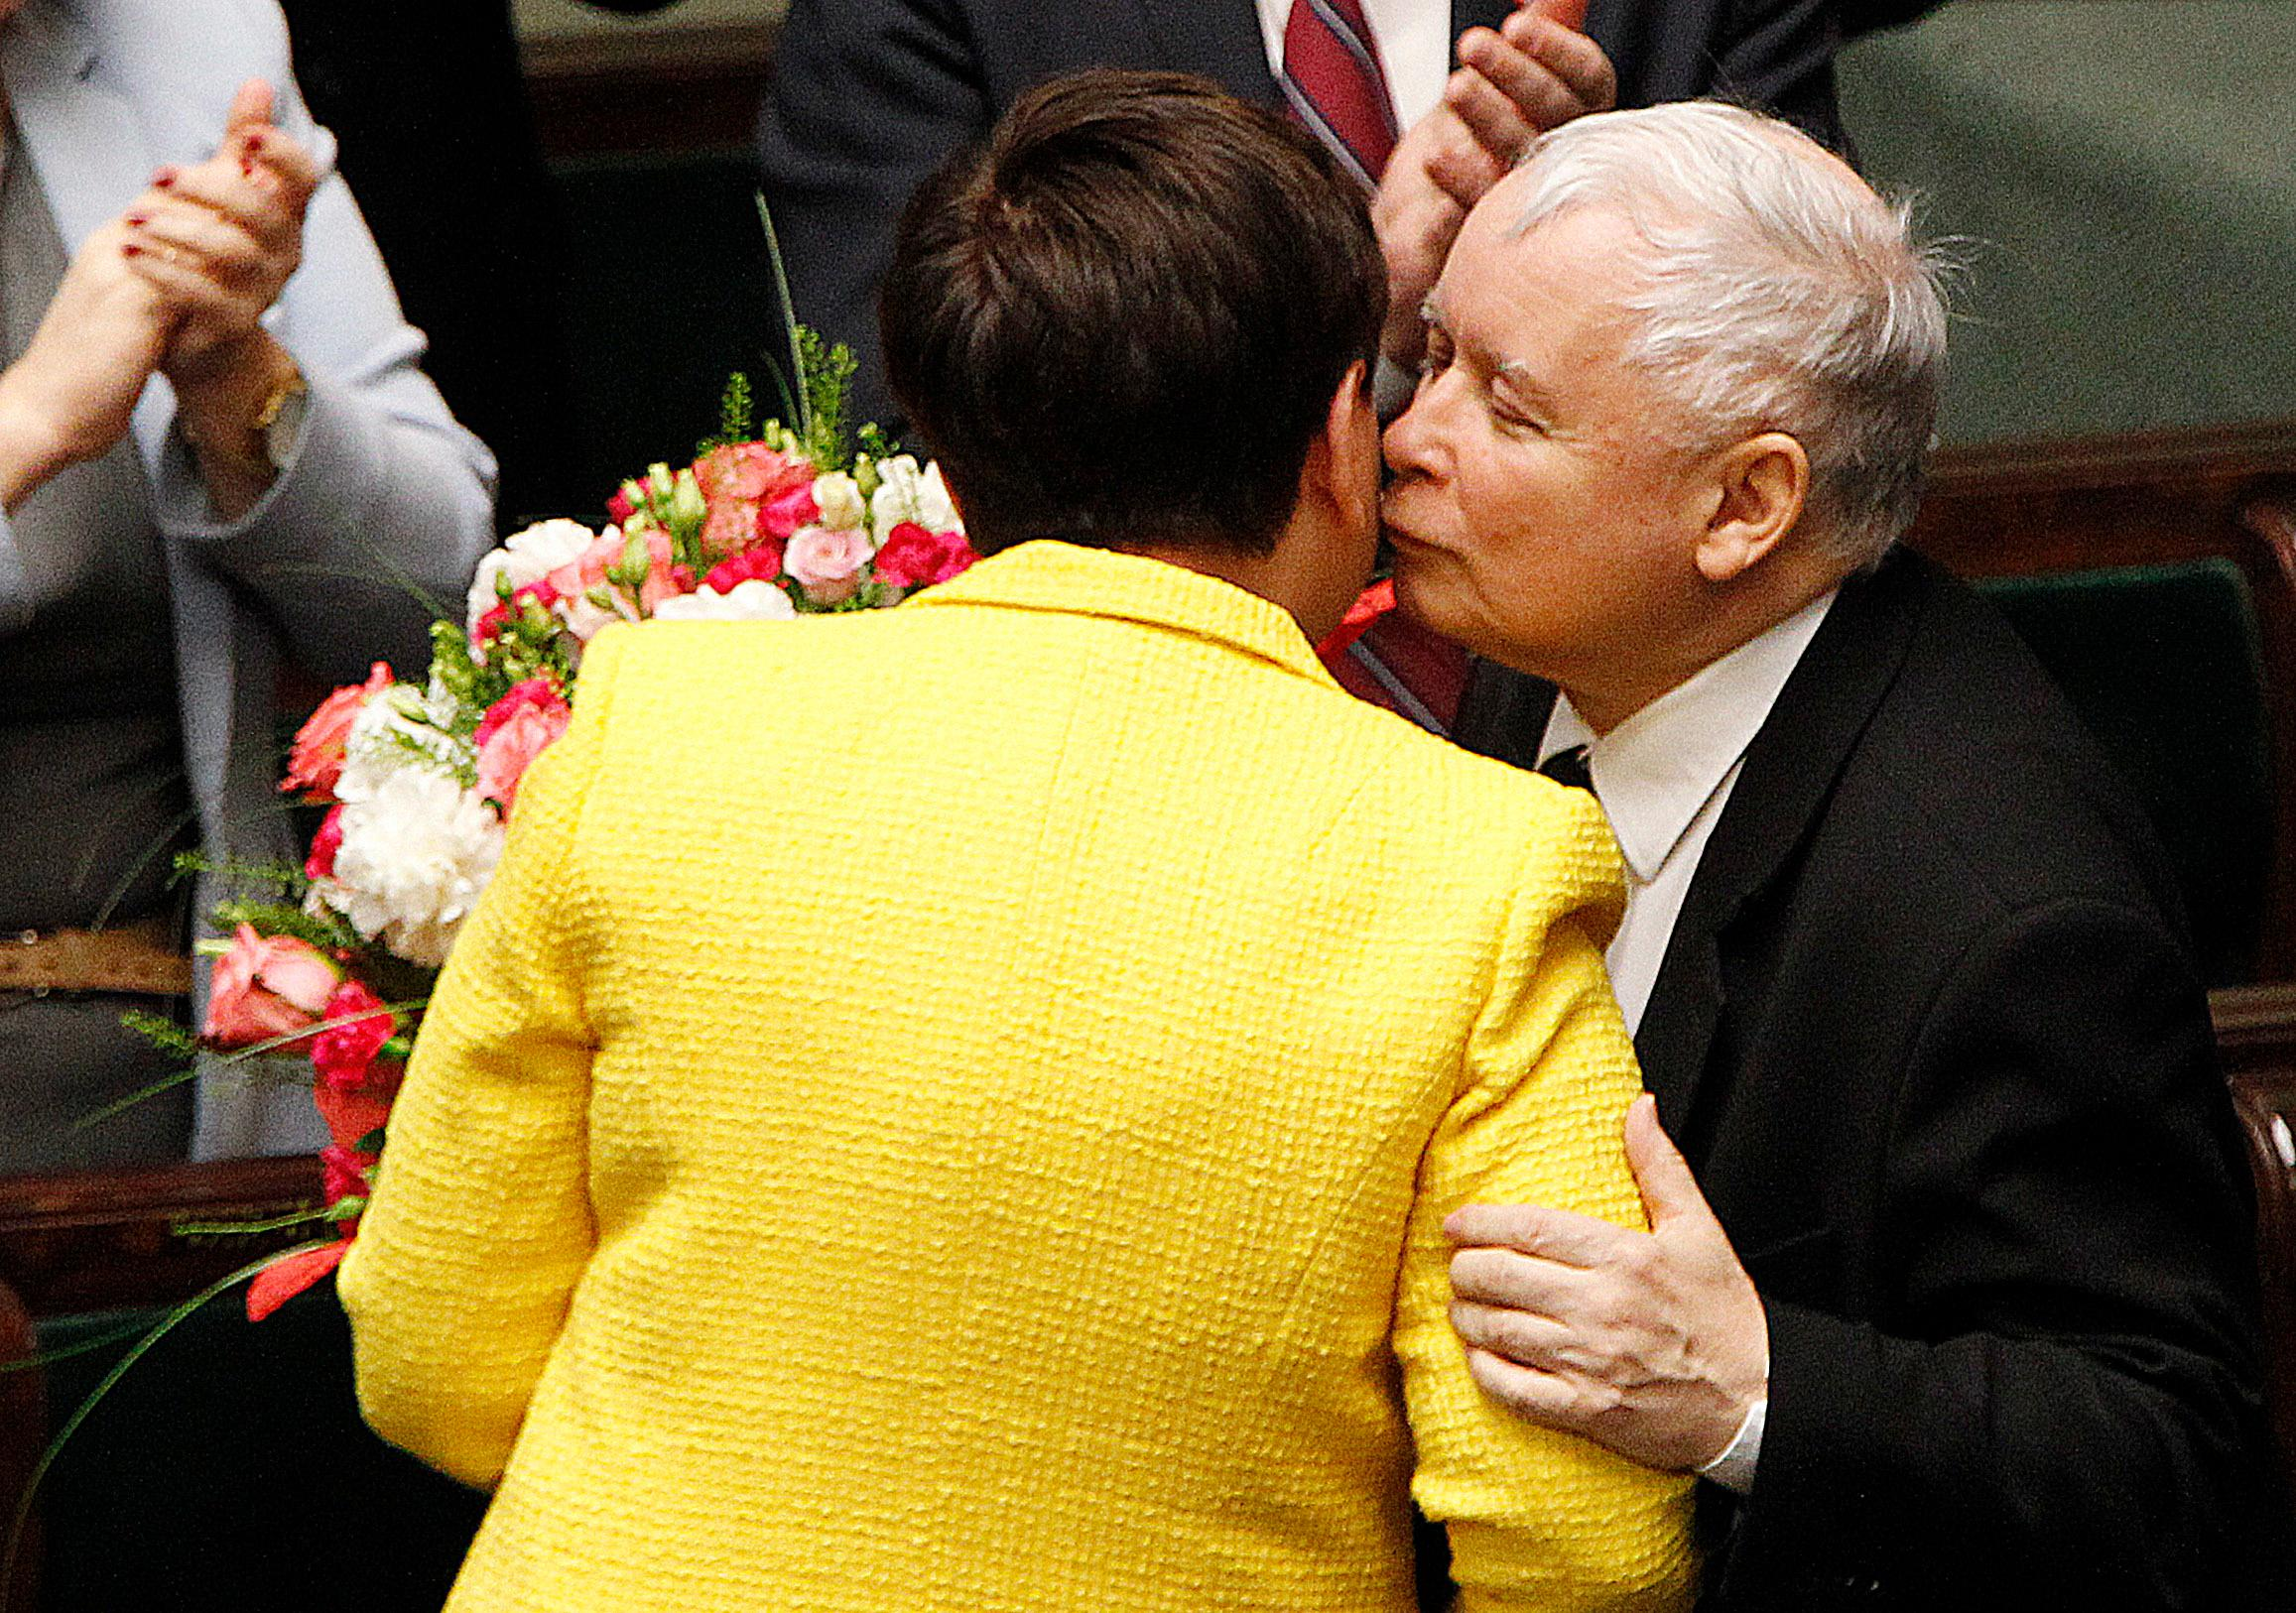 Jaroslaw Kaczynski, the powerful leader of Poland's ruling Law and Justice party gives Prime Minister Beata Szydlo a kiss and a bunch of flowers after her government survived a vote in which the opposition was seeking to oust it, at the parliament building in Warsaw, Poland, Thursday, Dec. 7, 2017. (AP Photo/Czarek Sokolowski)